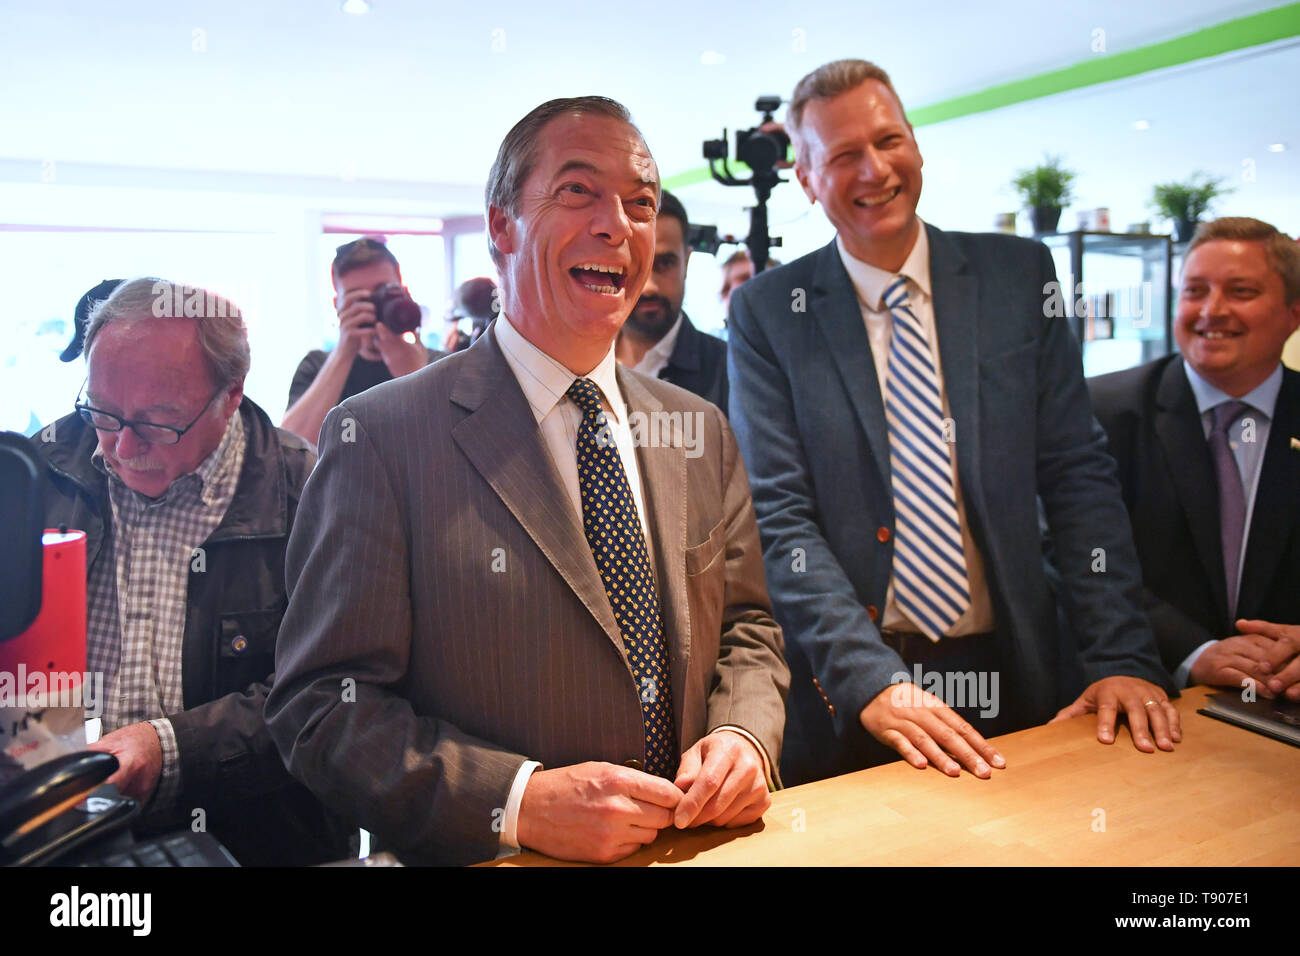 Brexit Party leader Nigel Farage visits a vape shop with the party's lead candidate in Wales, Nathan Gill, during a walkabout in Merthyr Tydfil. - Stock Image